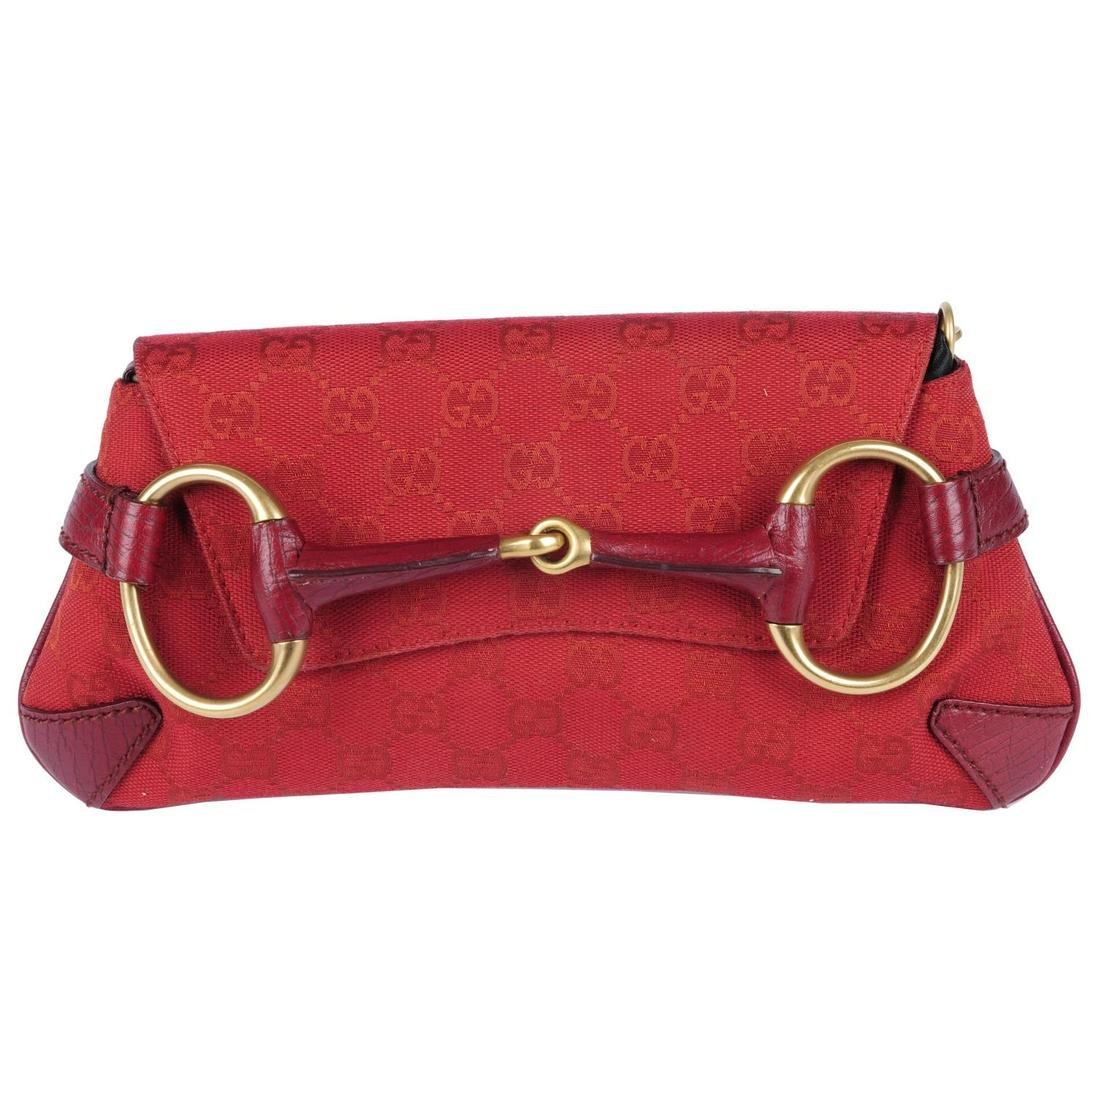 GUCCI - a red canvas Horsebit clutch. Designed with